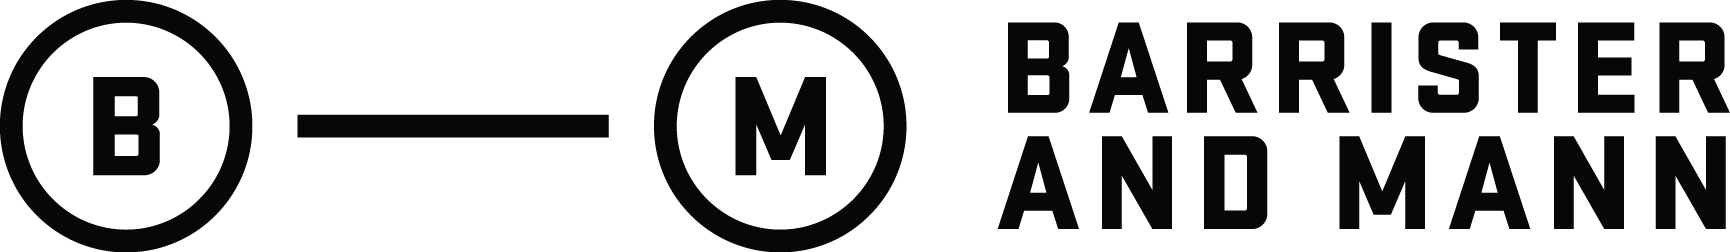 Barrister and Mann logo